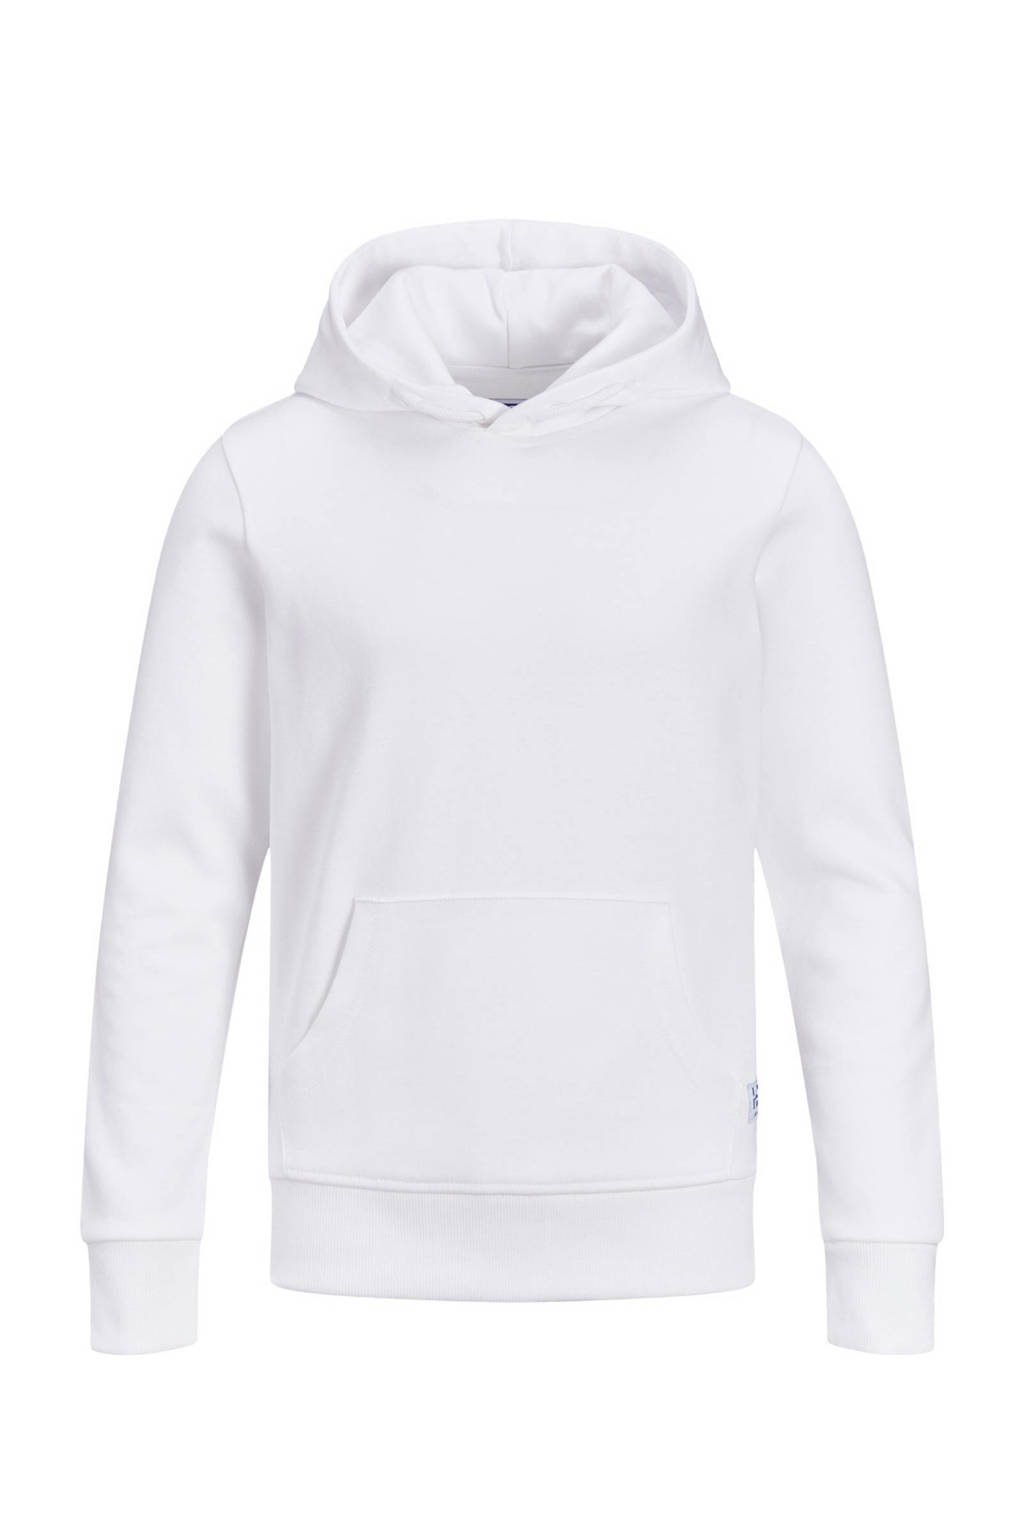 JACK & JONES JUNIOR hoodie Basic wit, Wit